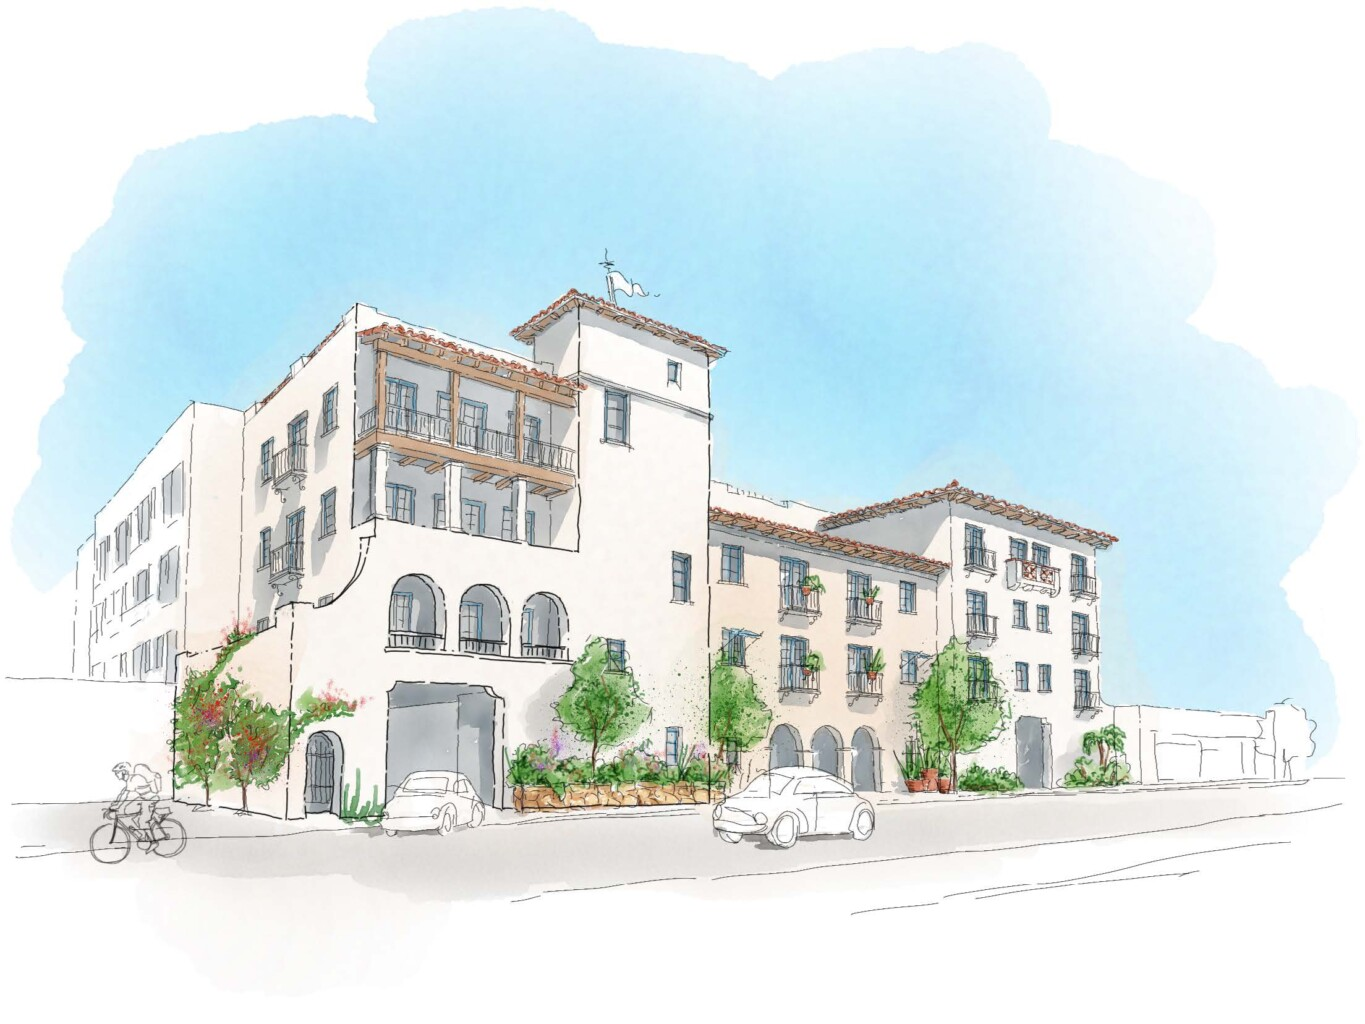 410 State St. Rendering